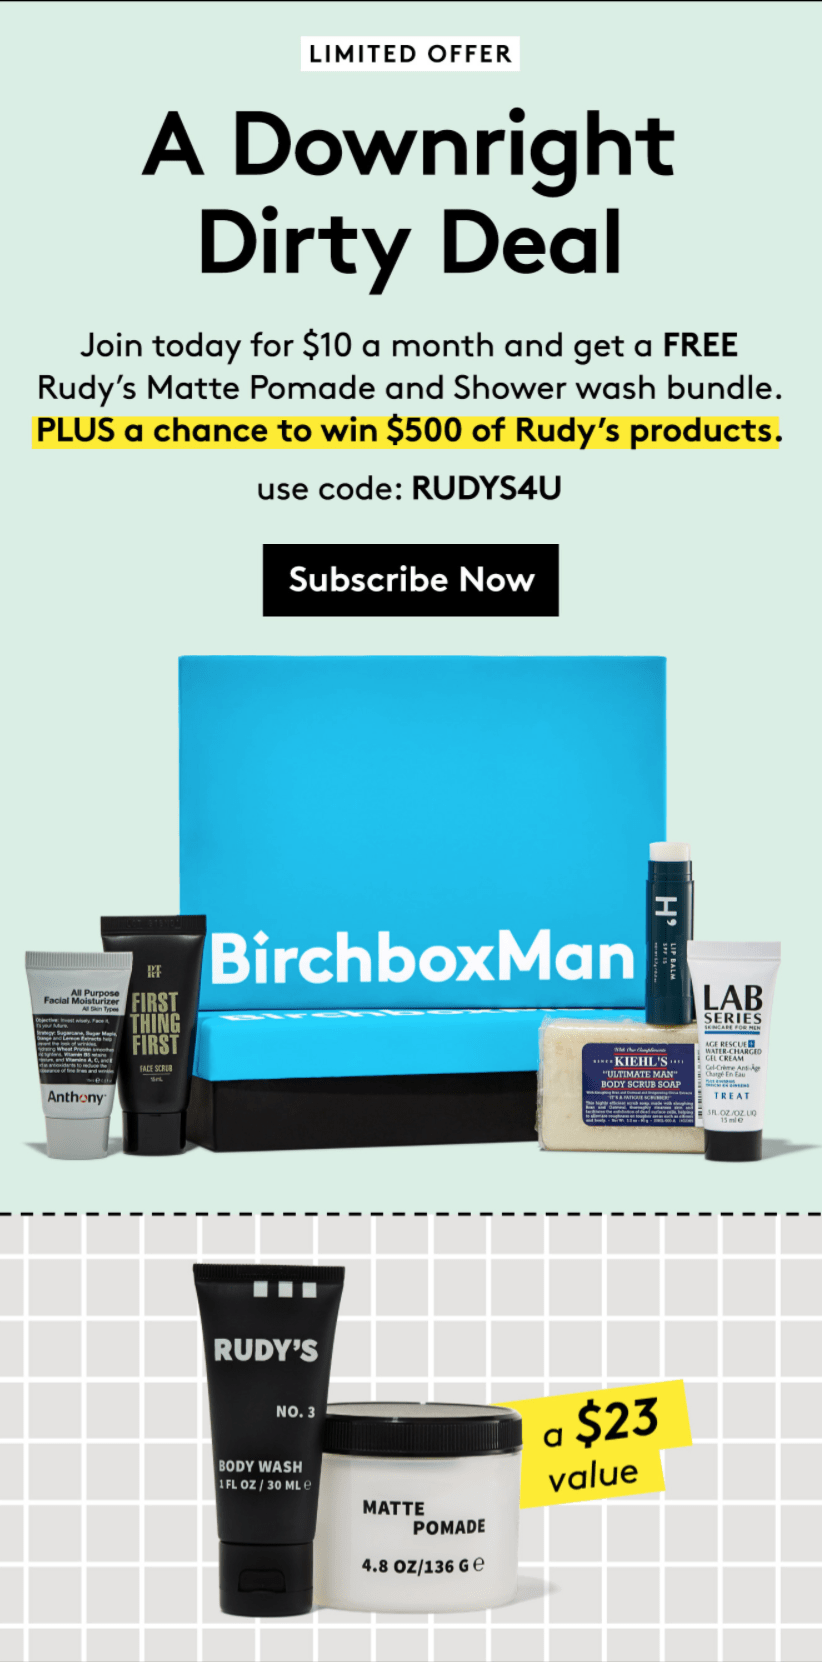 Birchbox Man Coupon: Free Rudy's Bundle with Subscription!